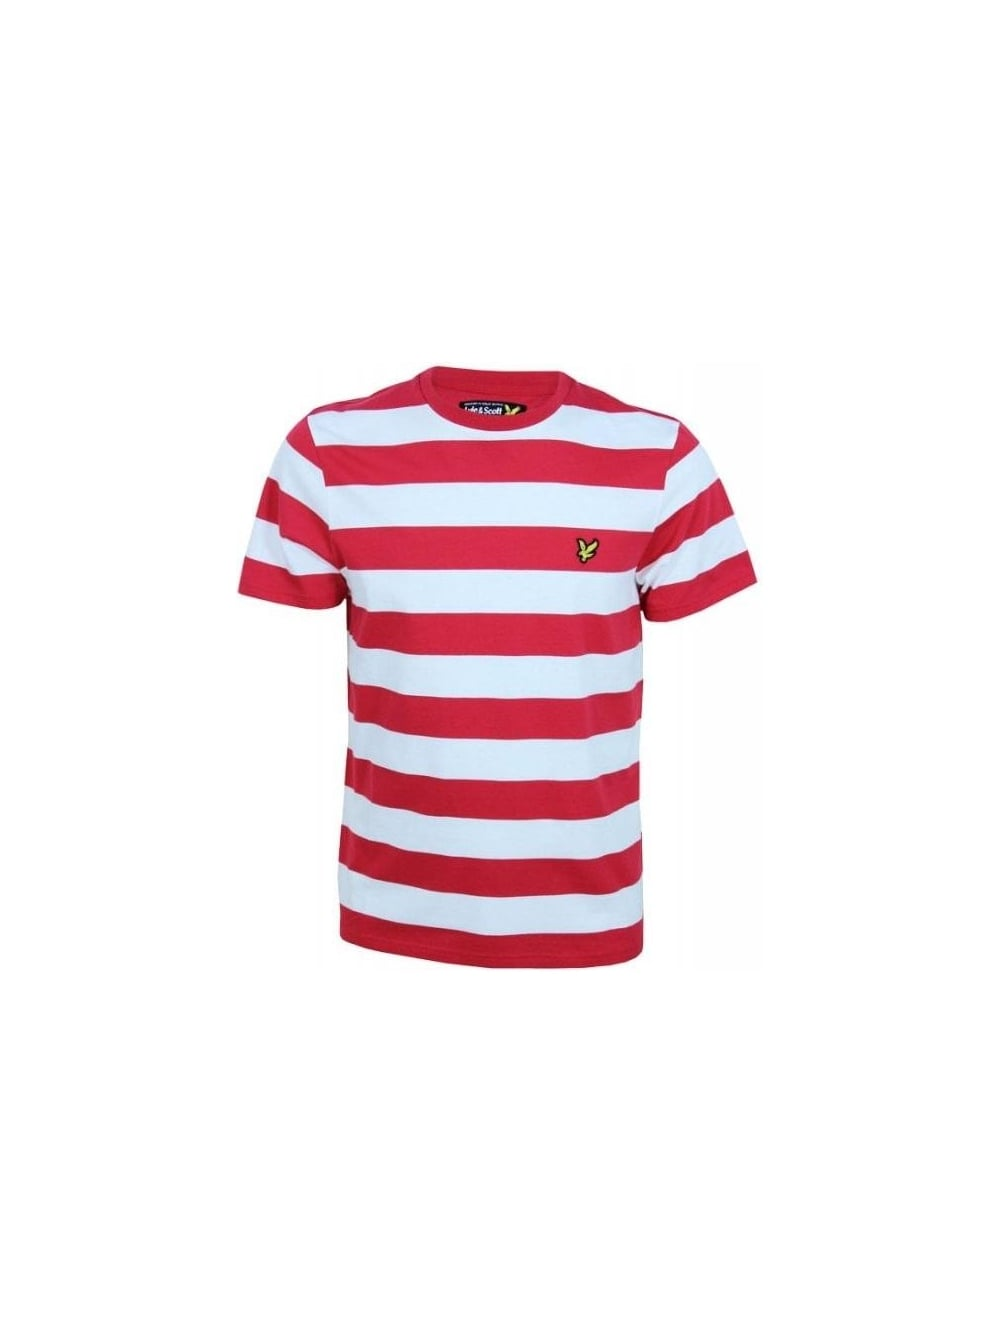 Lyle And Scott Block Stripe Tshirt In Royal Red Northern Threads Ampamp Polo Shirt